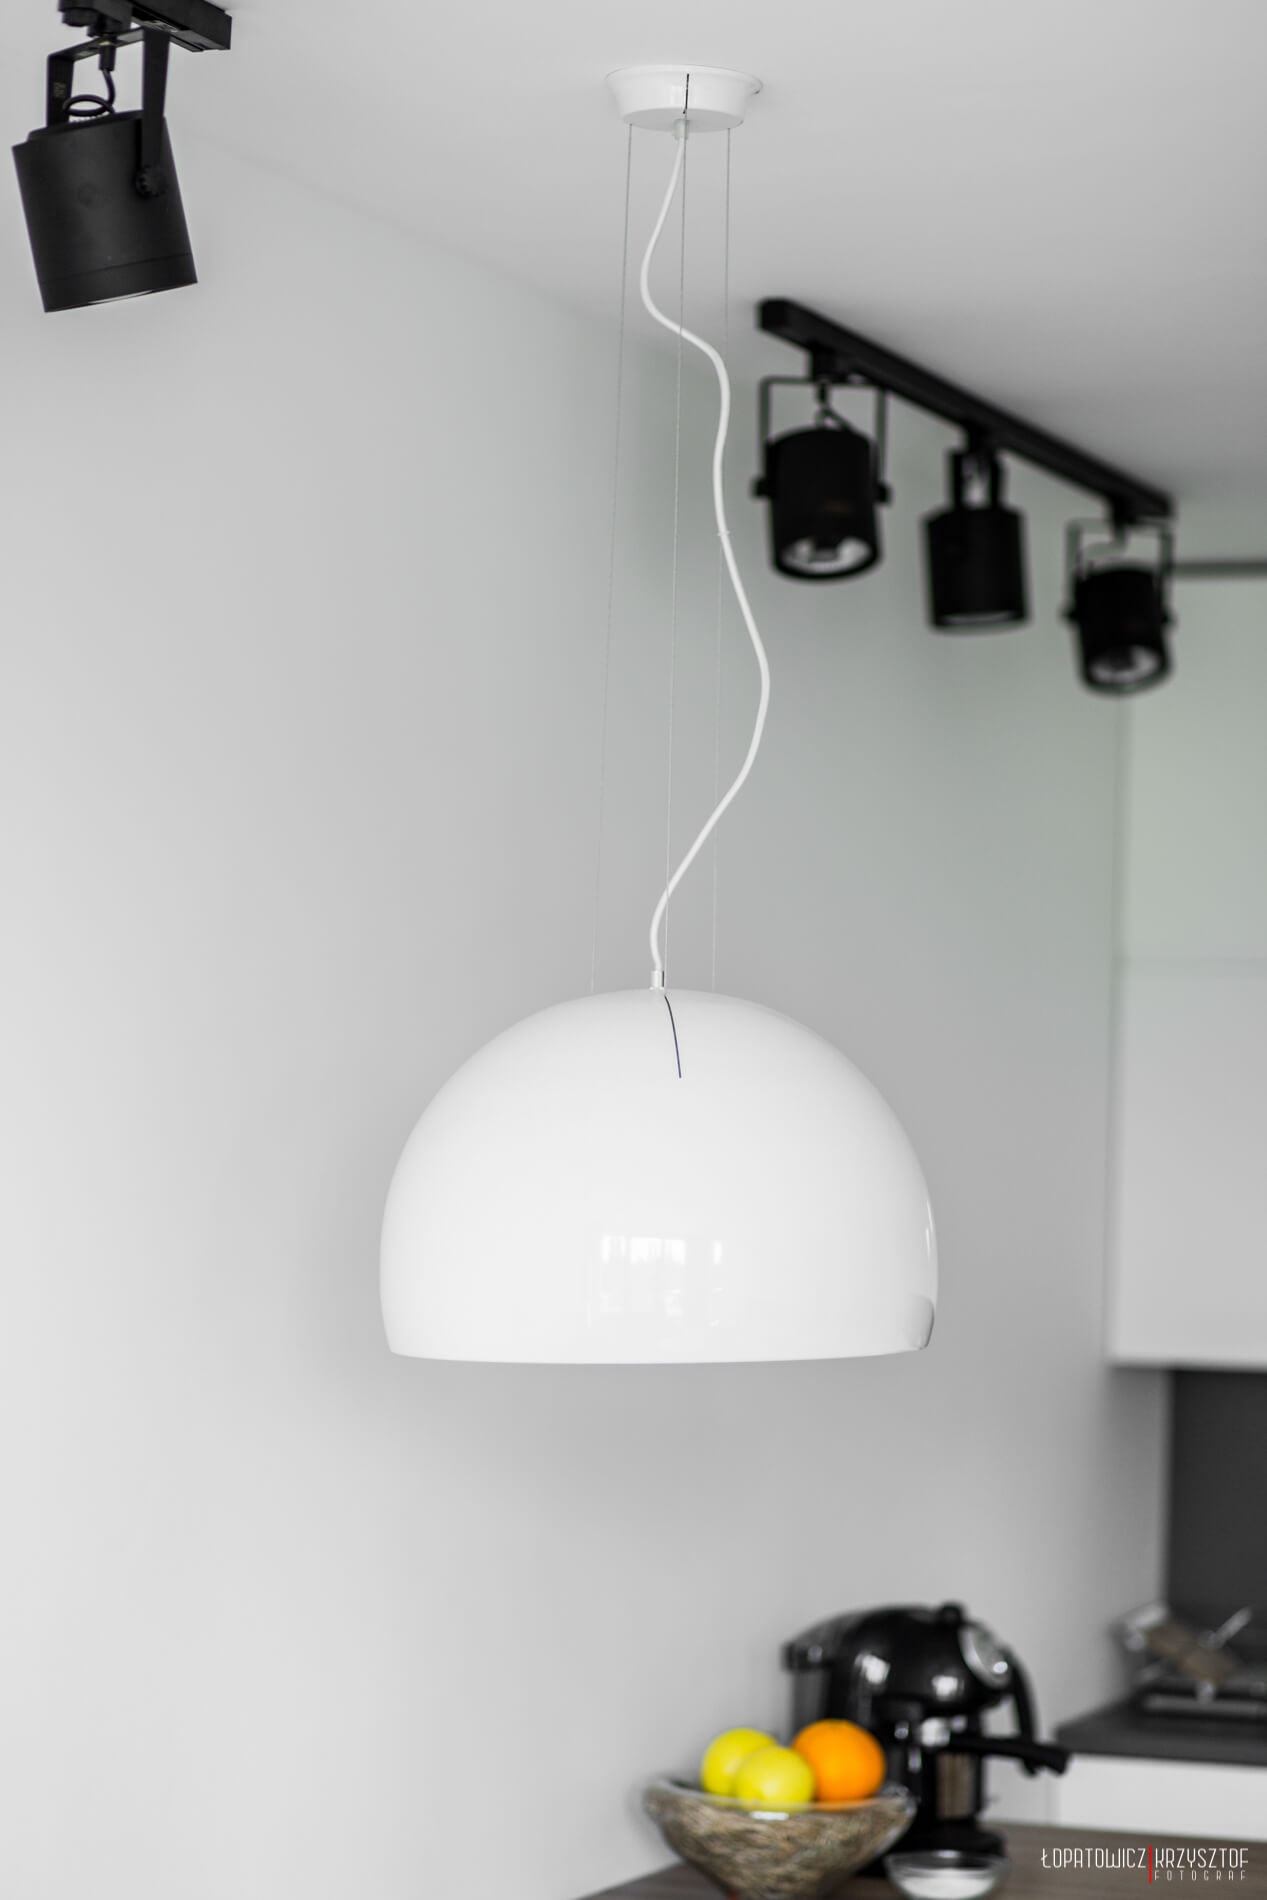 The second unique light fixture in the open space is a hemispherical white dome chandelier, hung above the dining table.